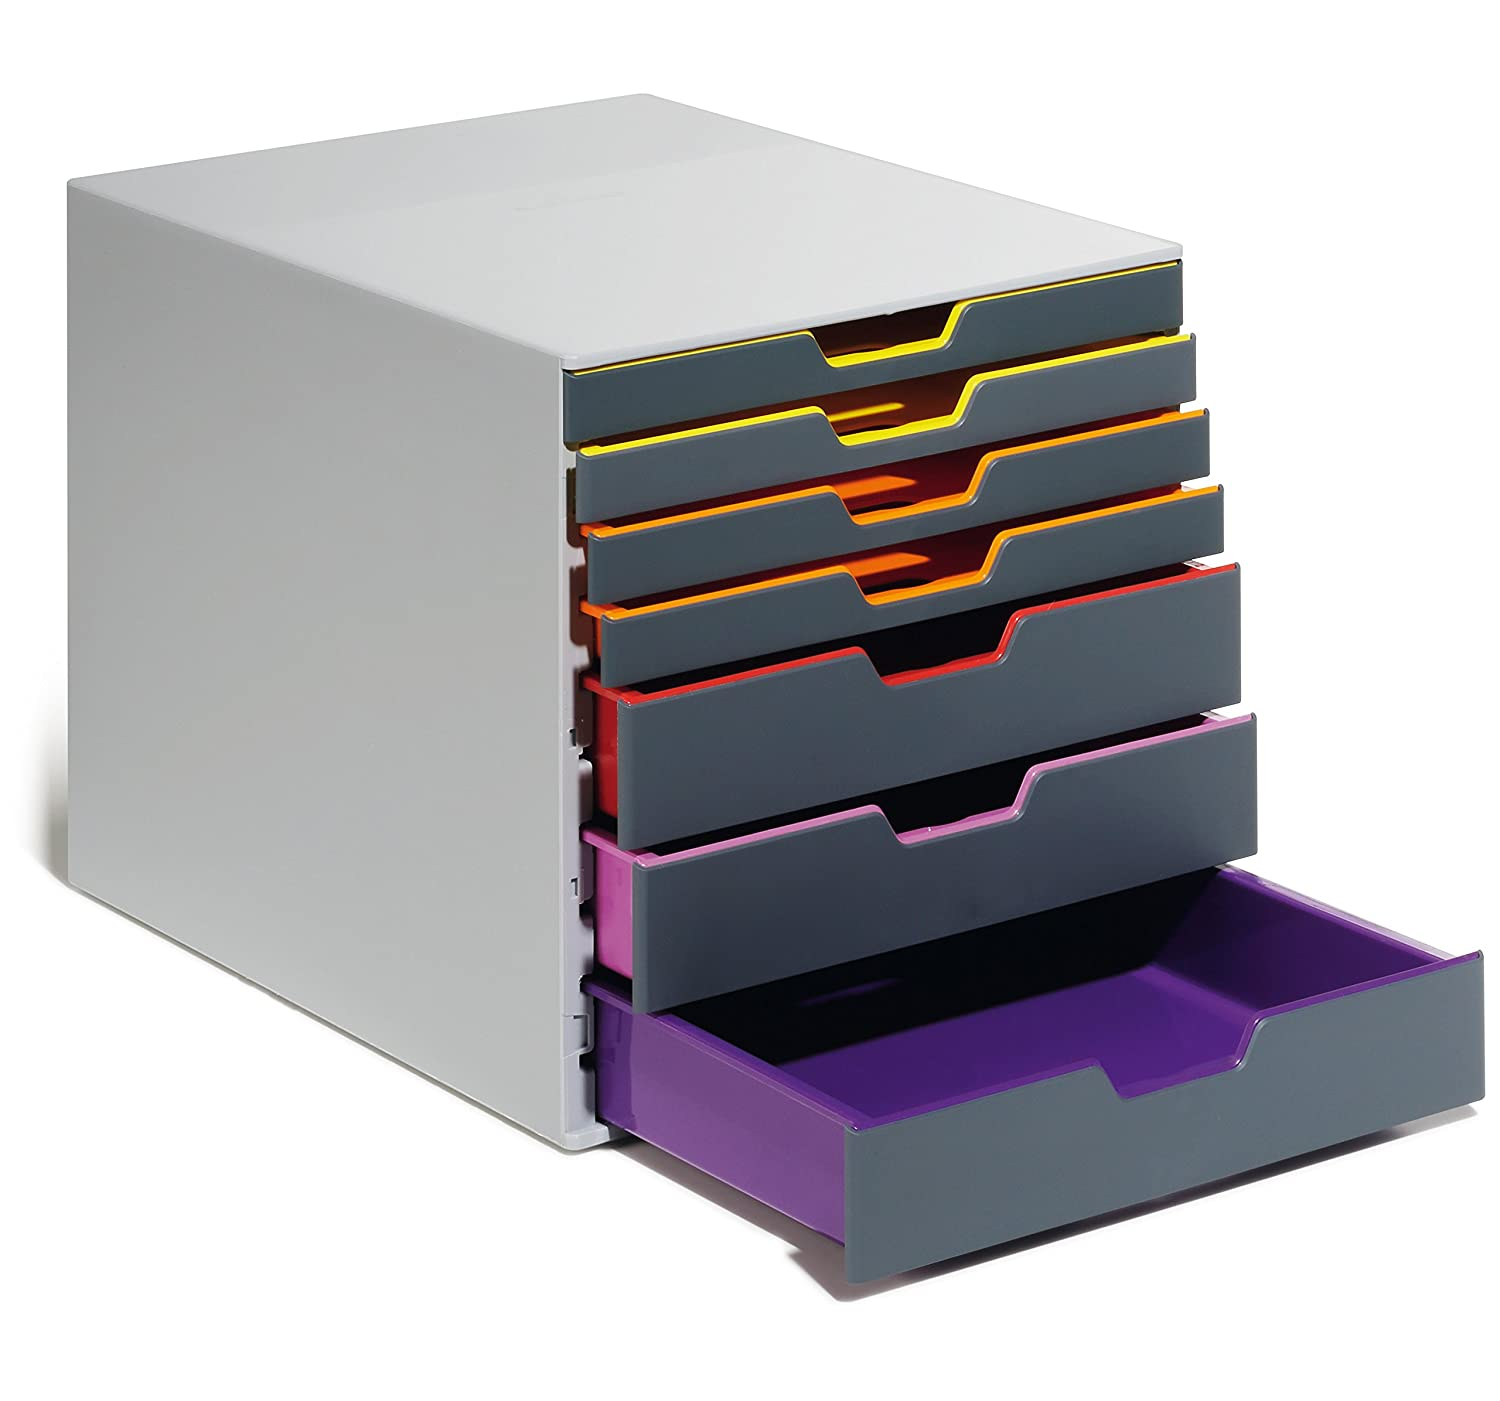 DURABLE Desktop Drawer Organizer Gray /& Multicolored VARICOLOR 7 Compartments with Removable Labels 760727 11 w x 14 d x 11.375 h